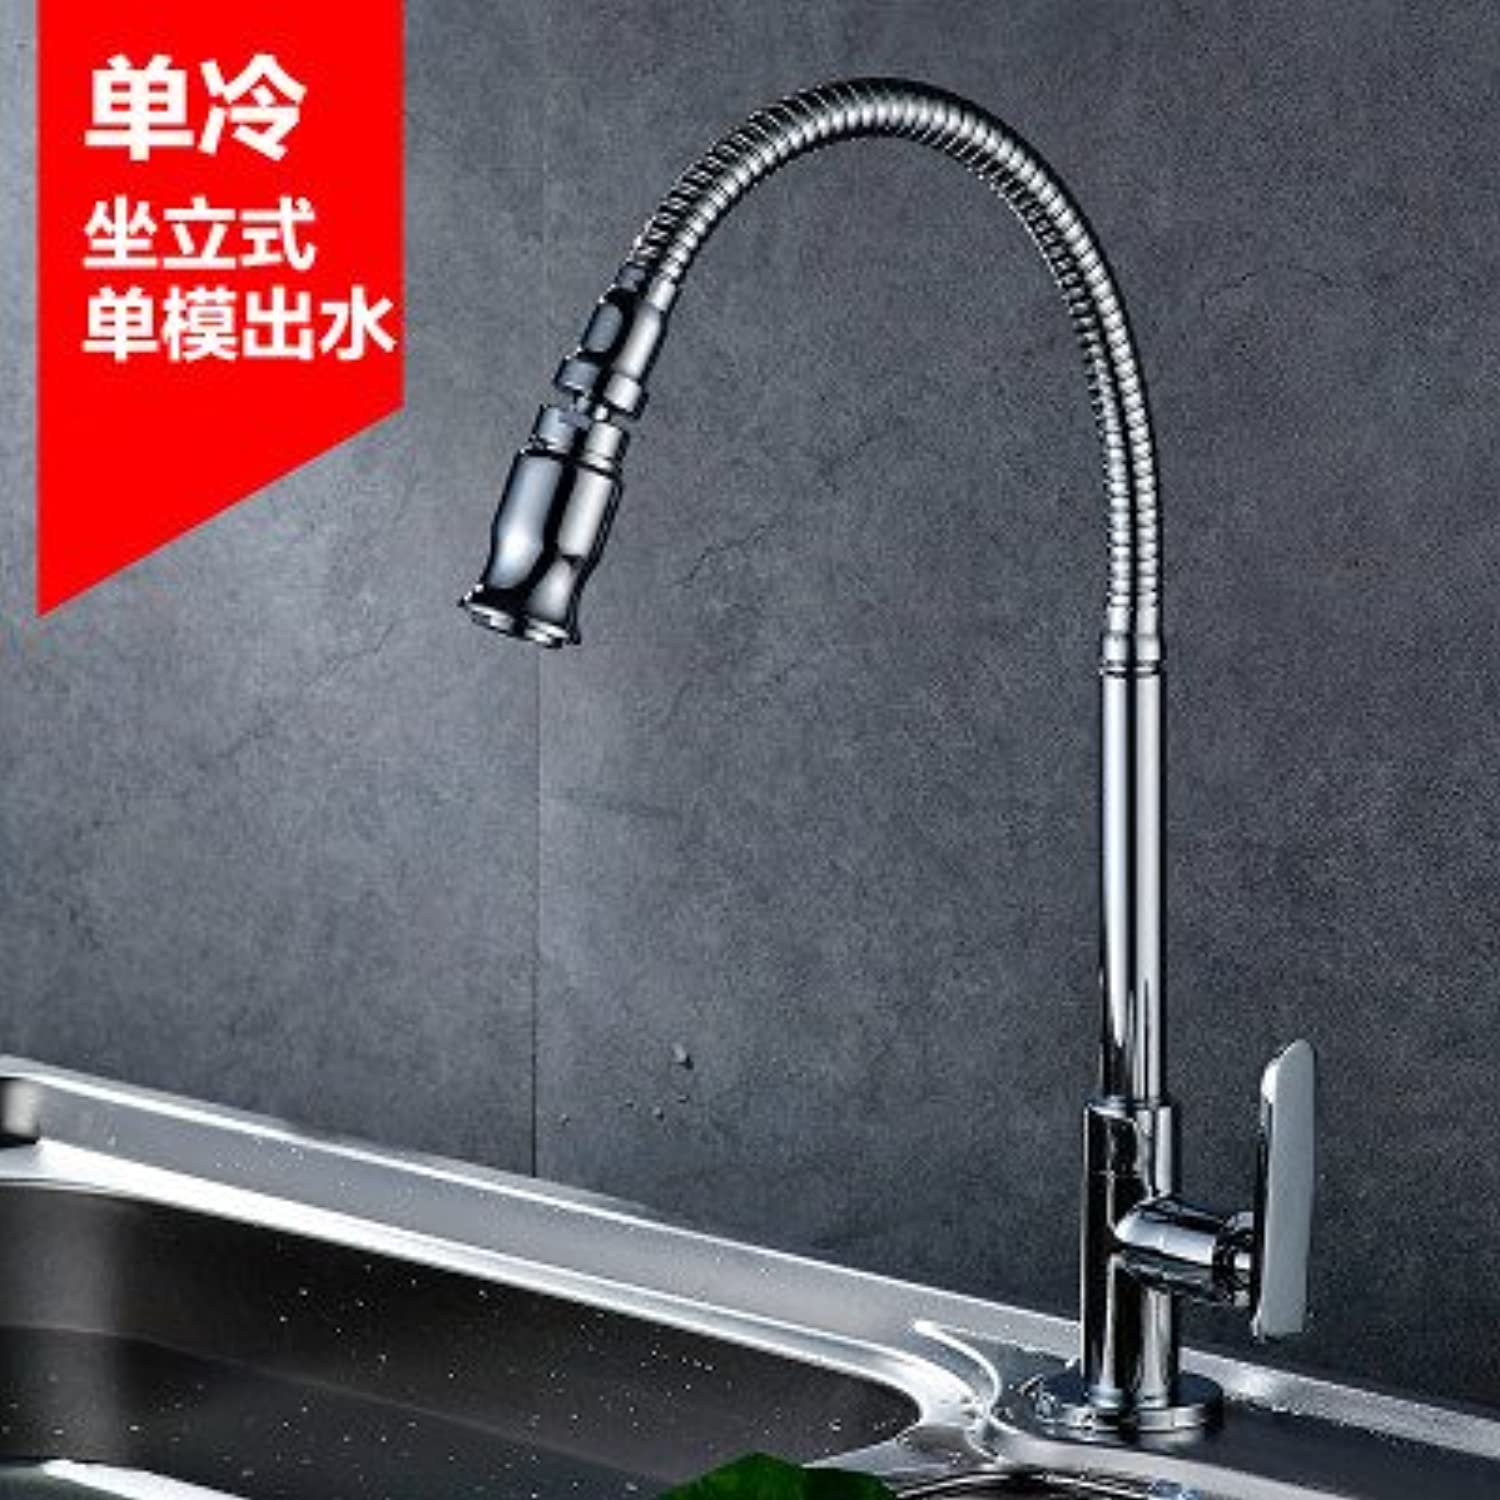 Gyps Faucet Single-Lever Mixer Tap for Bathroom Mops Pool Faucet Extension Cold - Copper in the Wall Swing Kitchen Balcony Pug Pool Laundry Service Pool Fittings Sitting